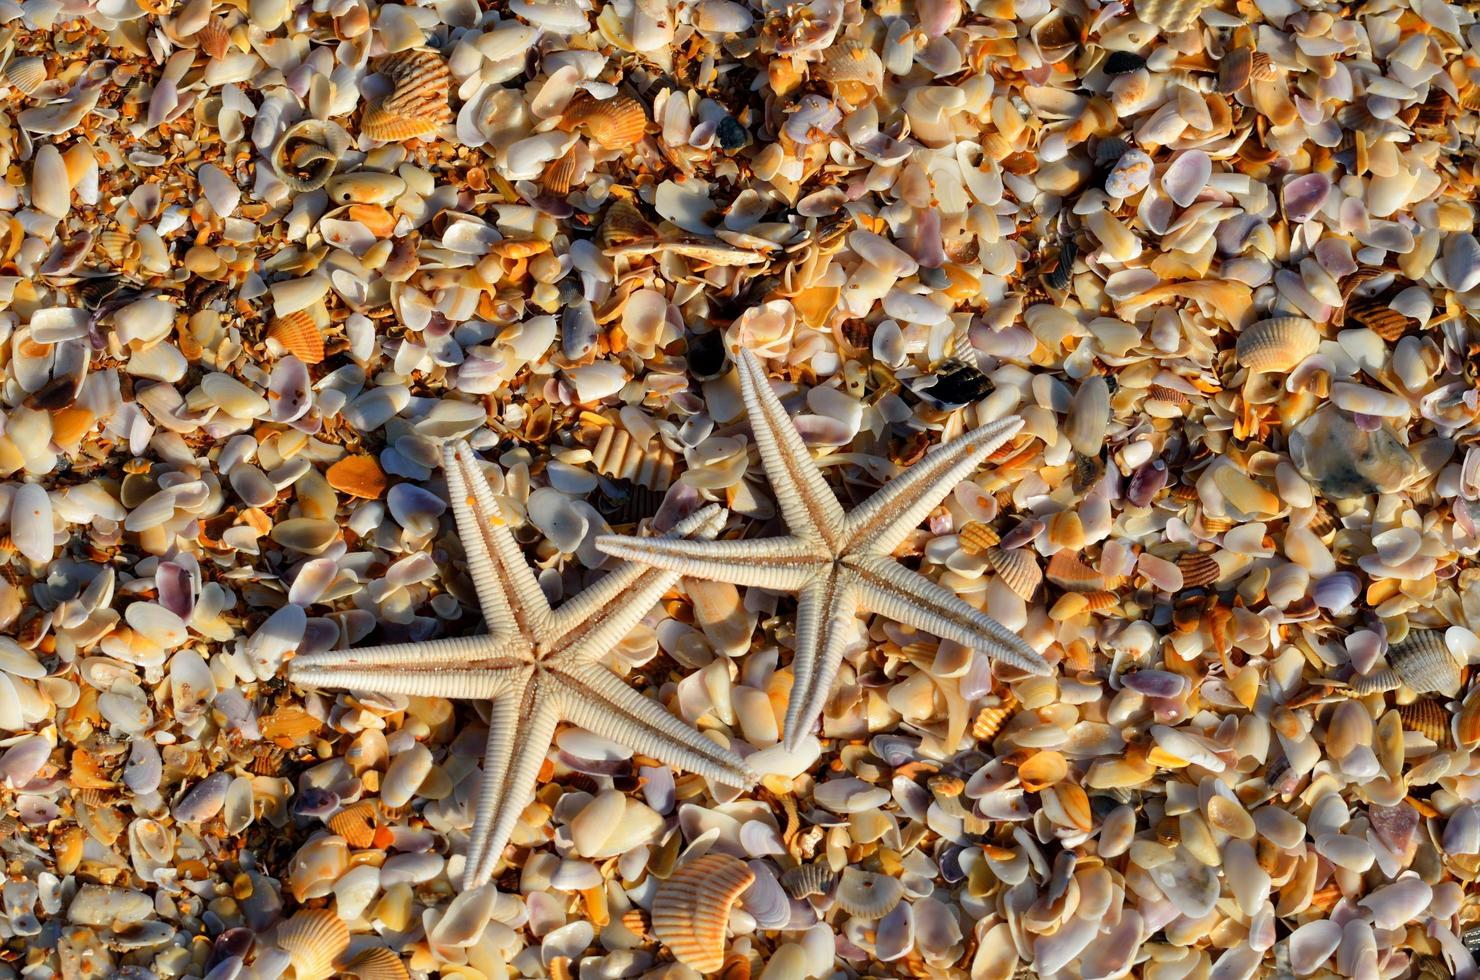 Starfishes on the beach photo